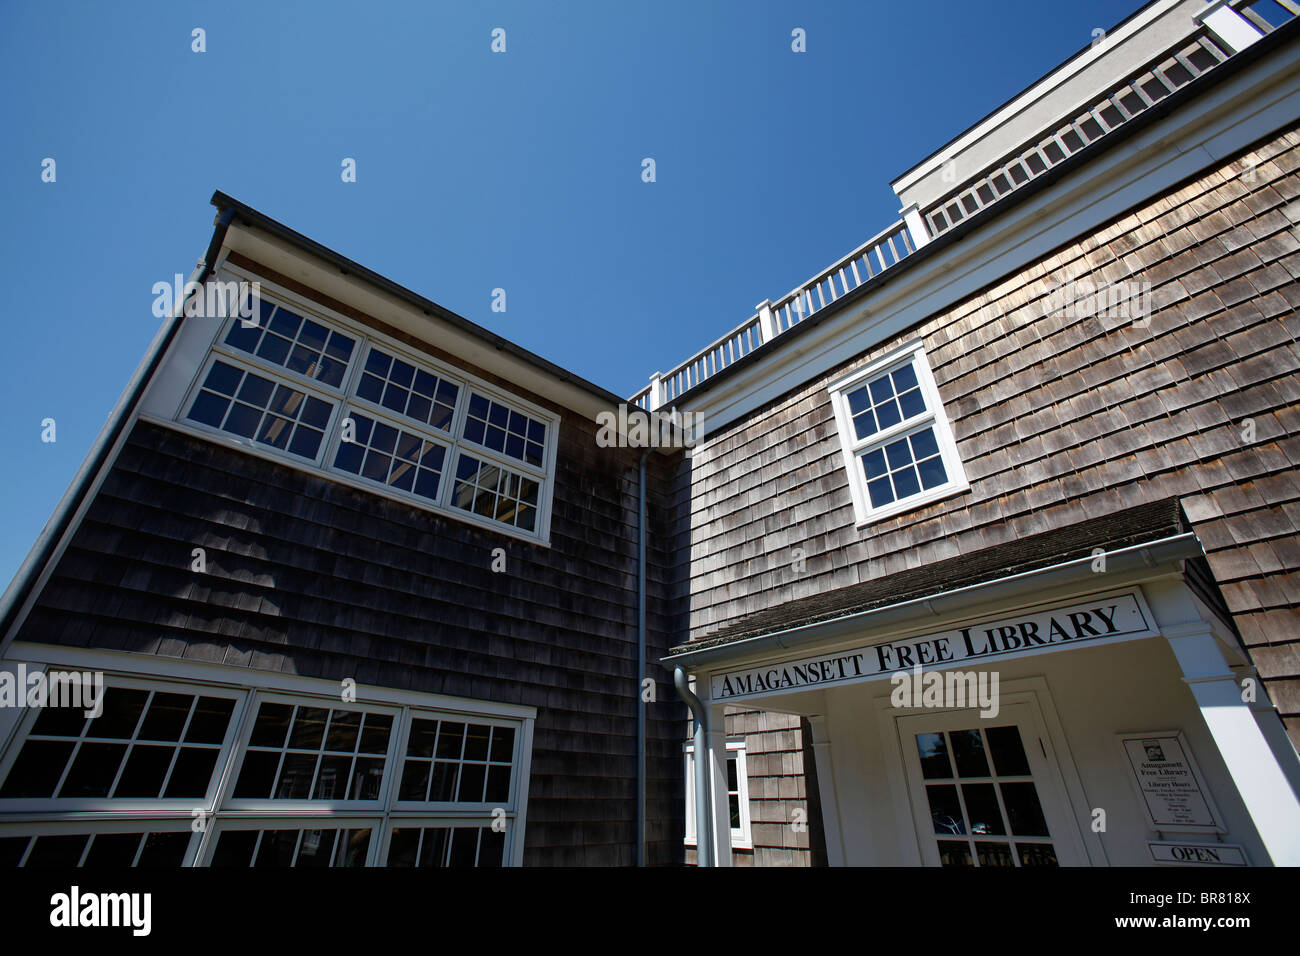 The public library in Amagansett in the Hamptons on Long Island New York - Stock Image